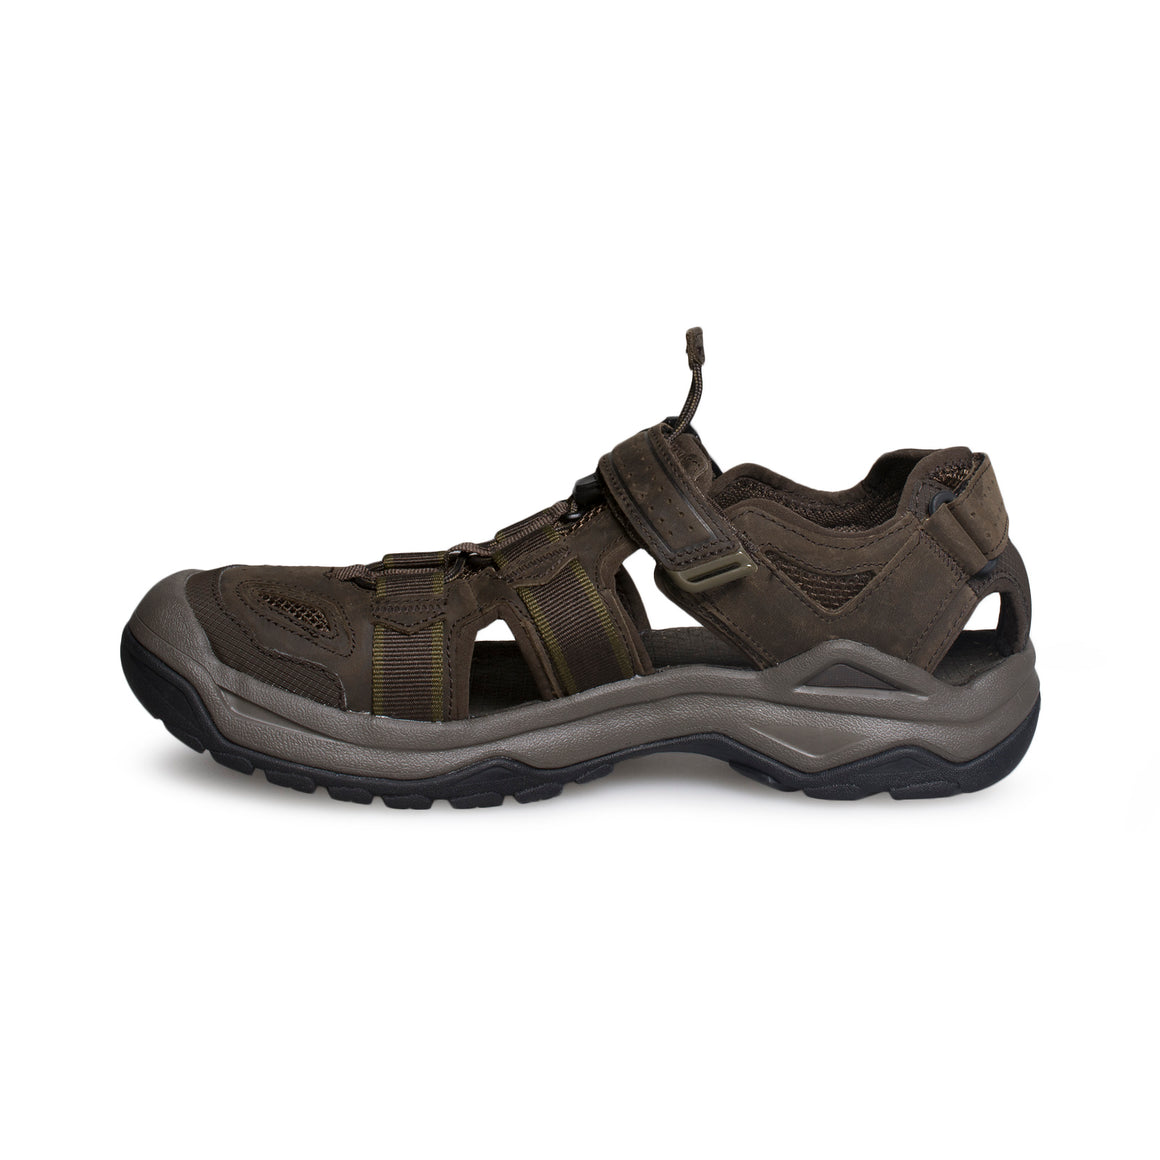 Teva Omnium 2 Leather Turkish Coffee Sandals - Men's